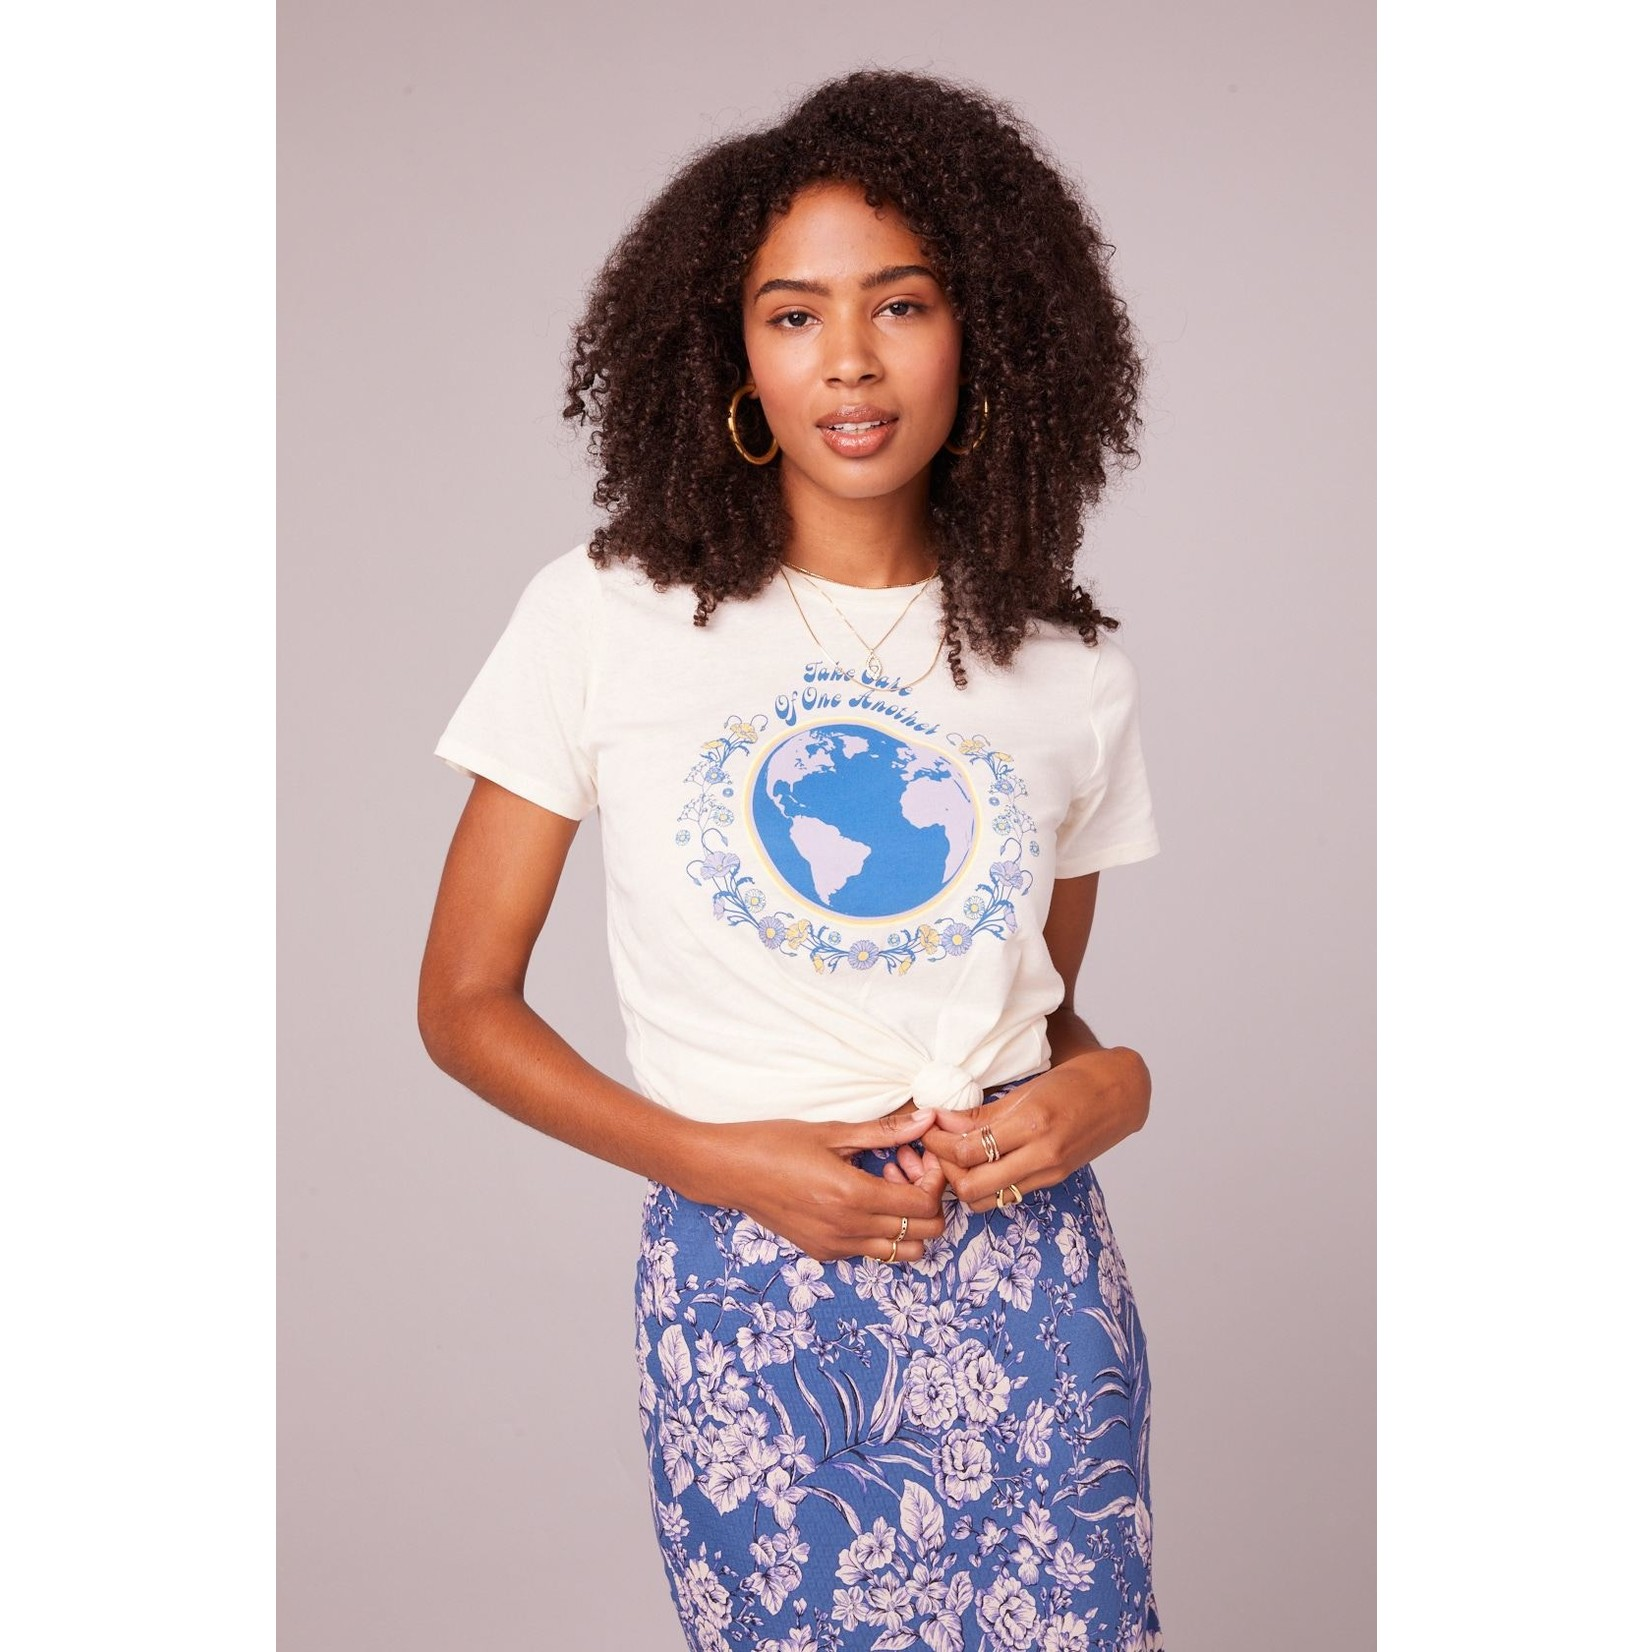 B.O.G. Collective Take Care Of One Another Graphic Tee